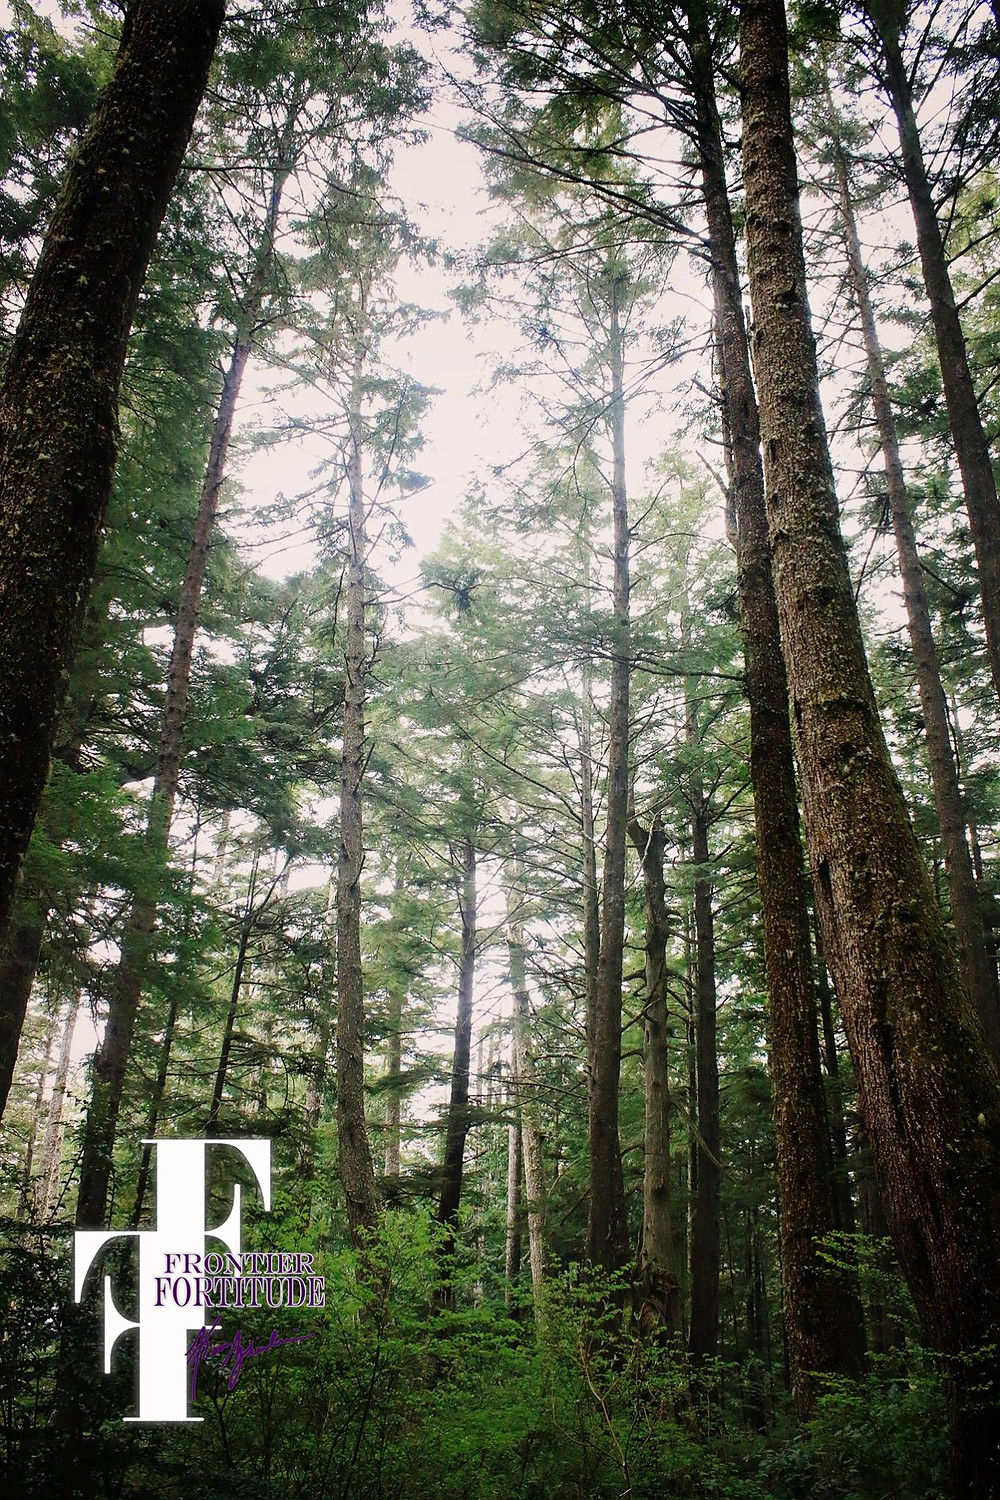 Olympic Peninsula Forest